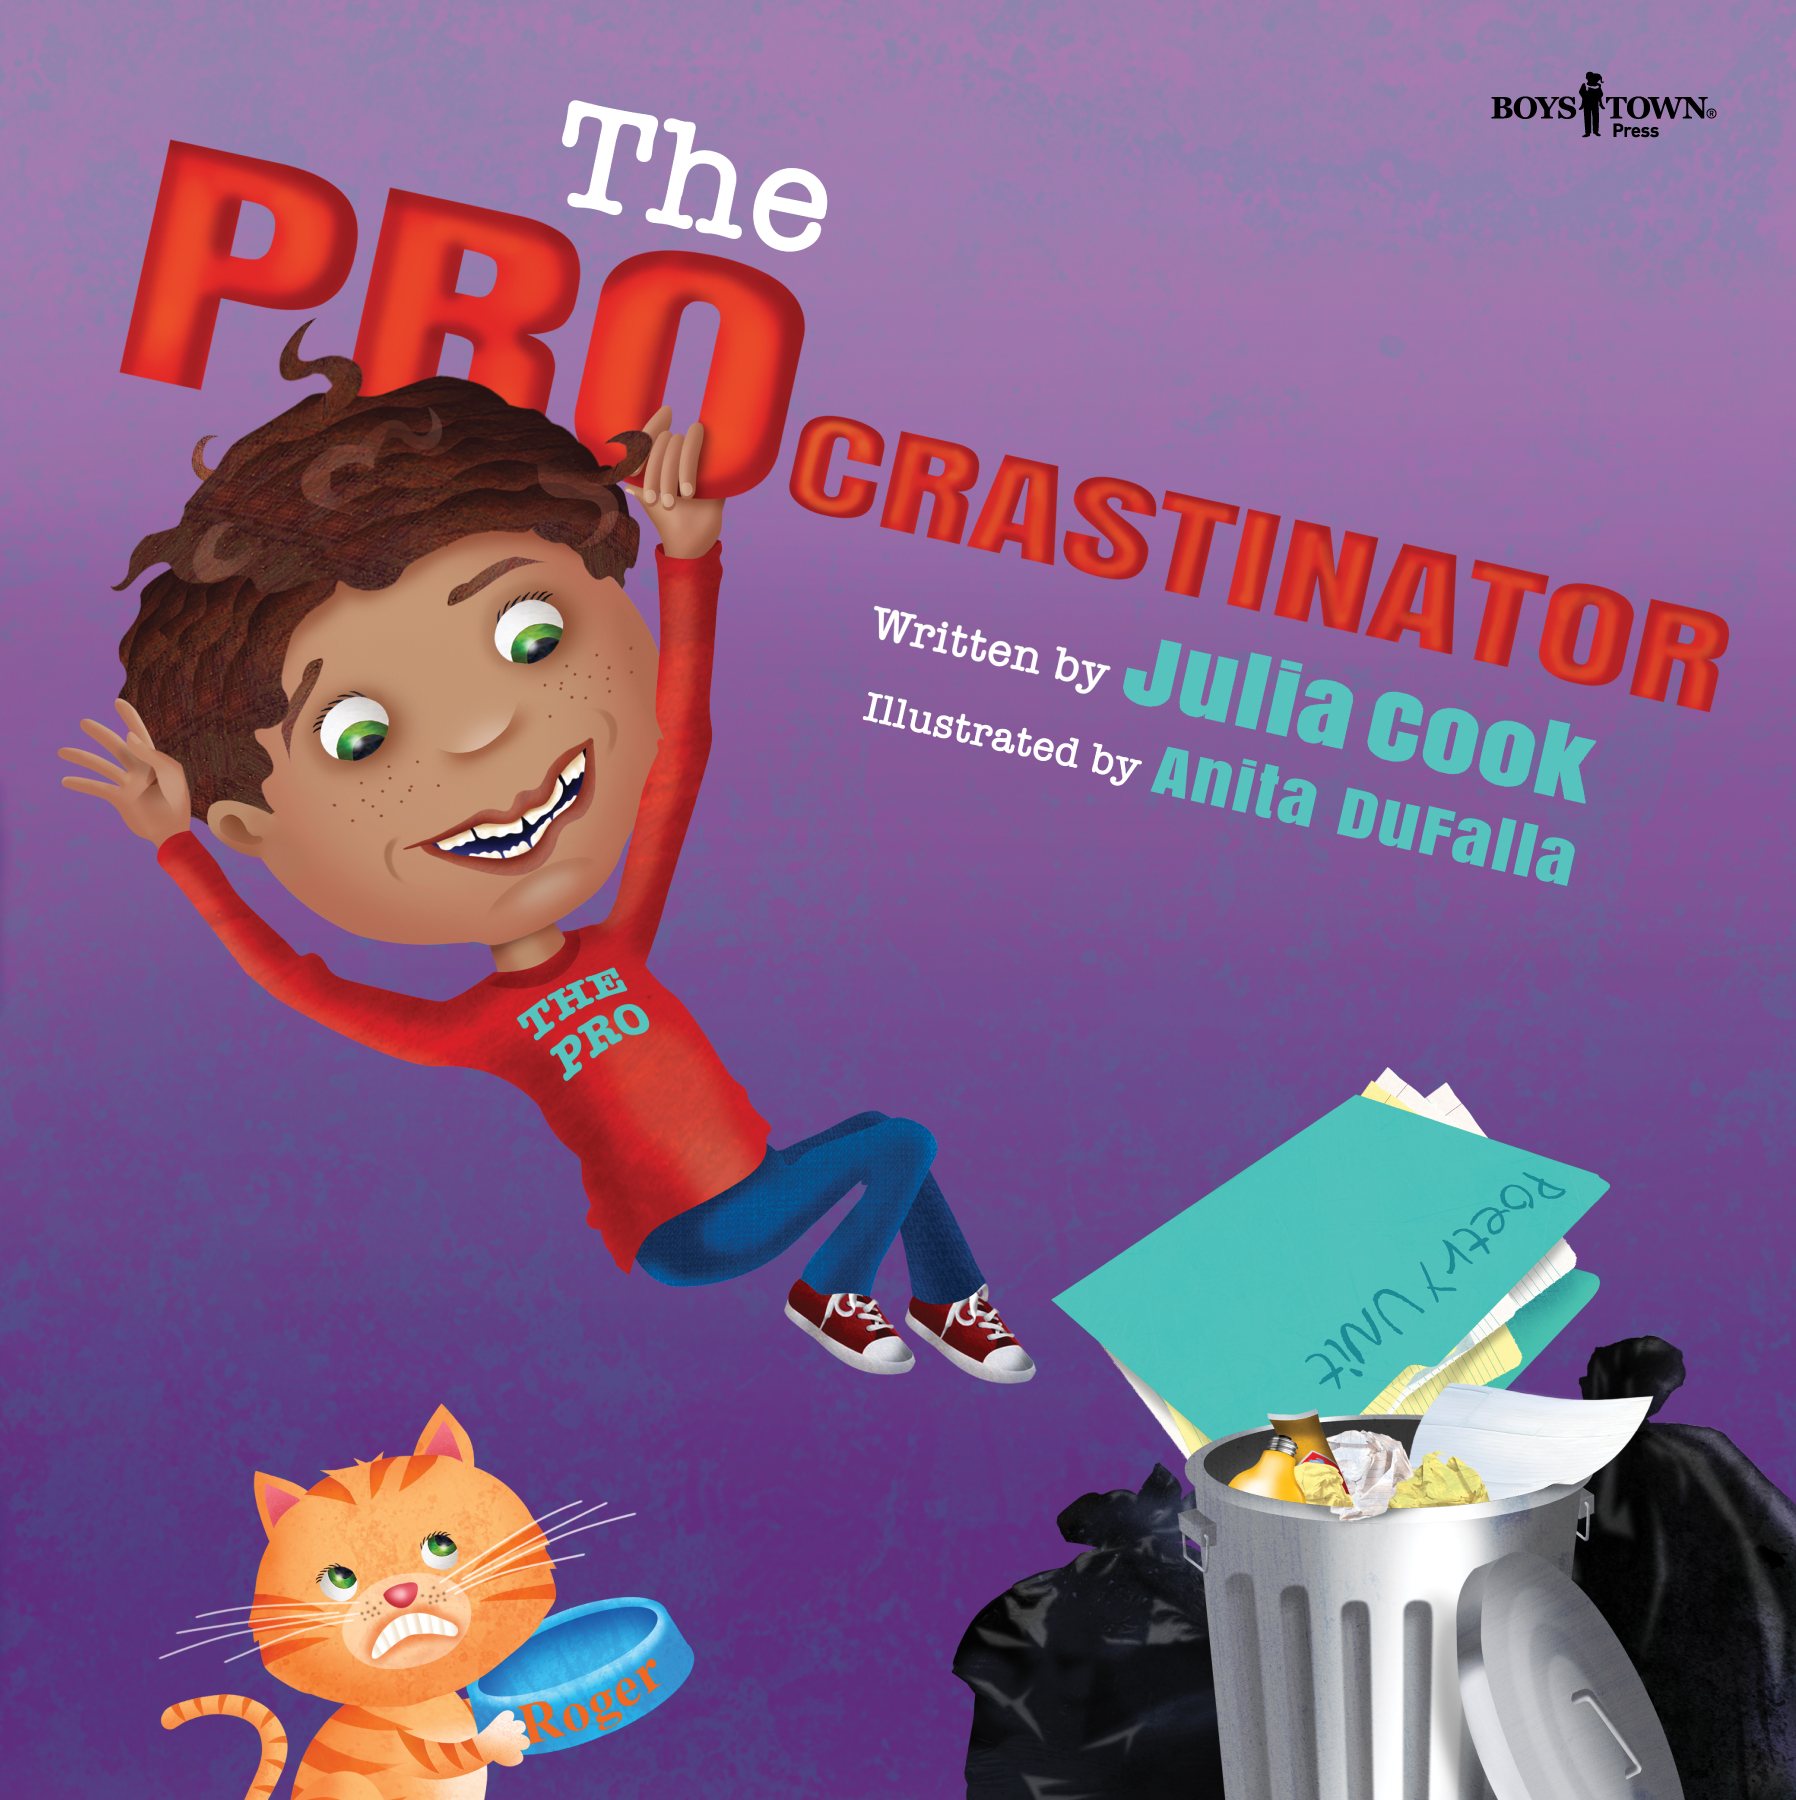 The Procrastinator by Julia Cook